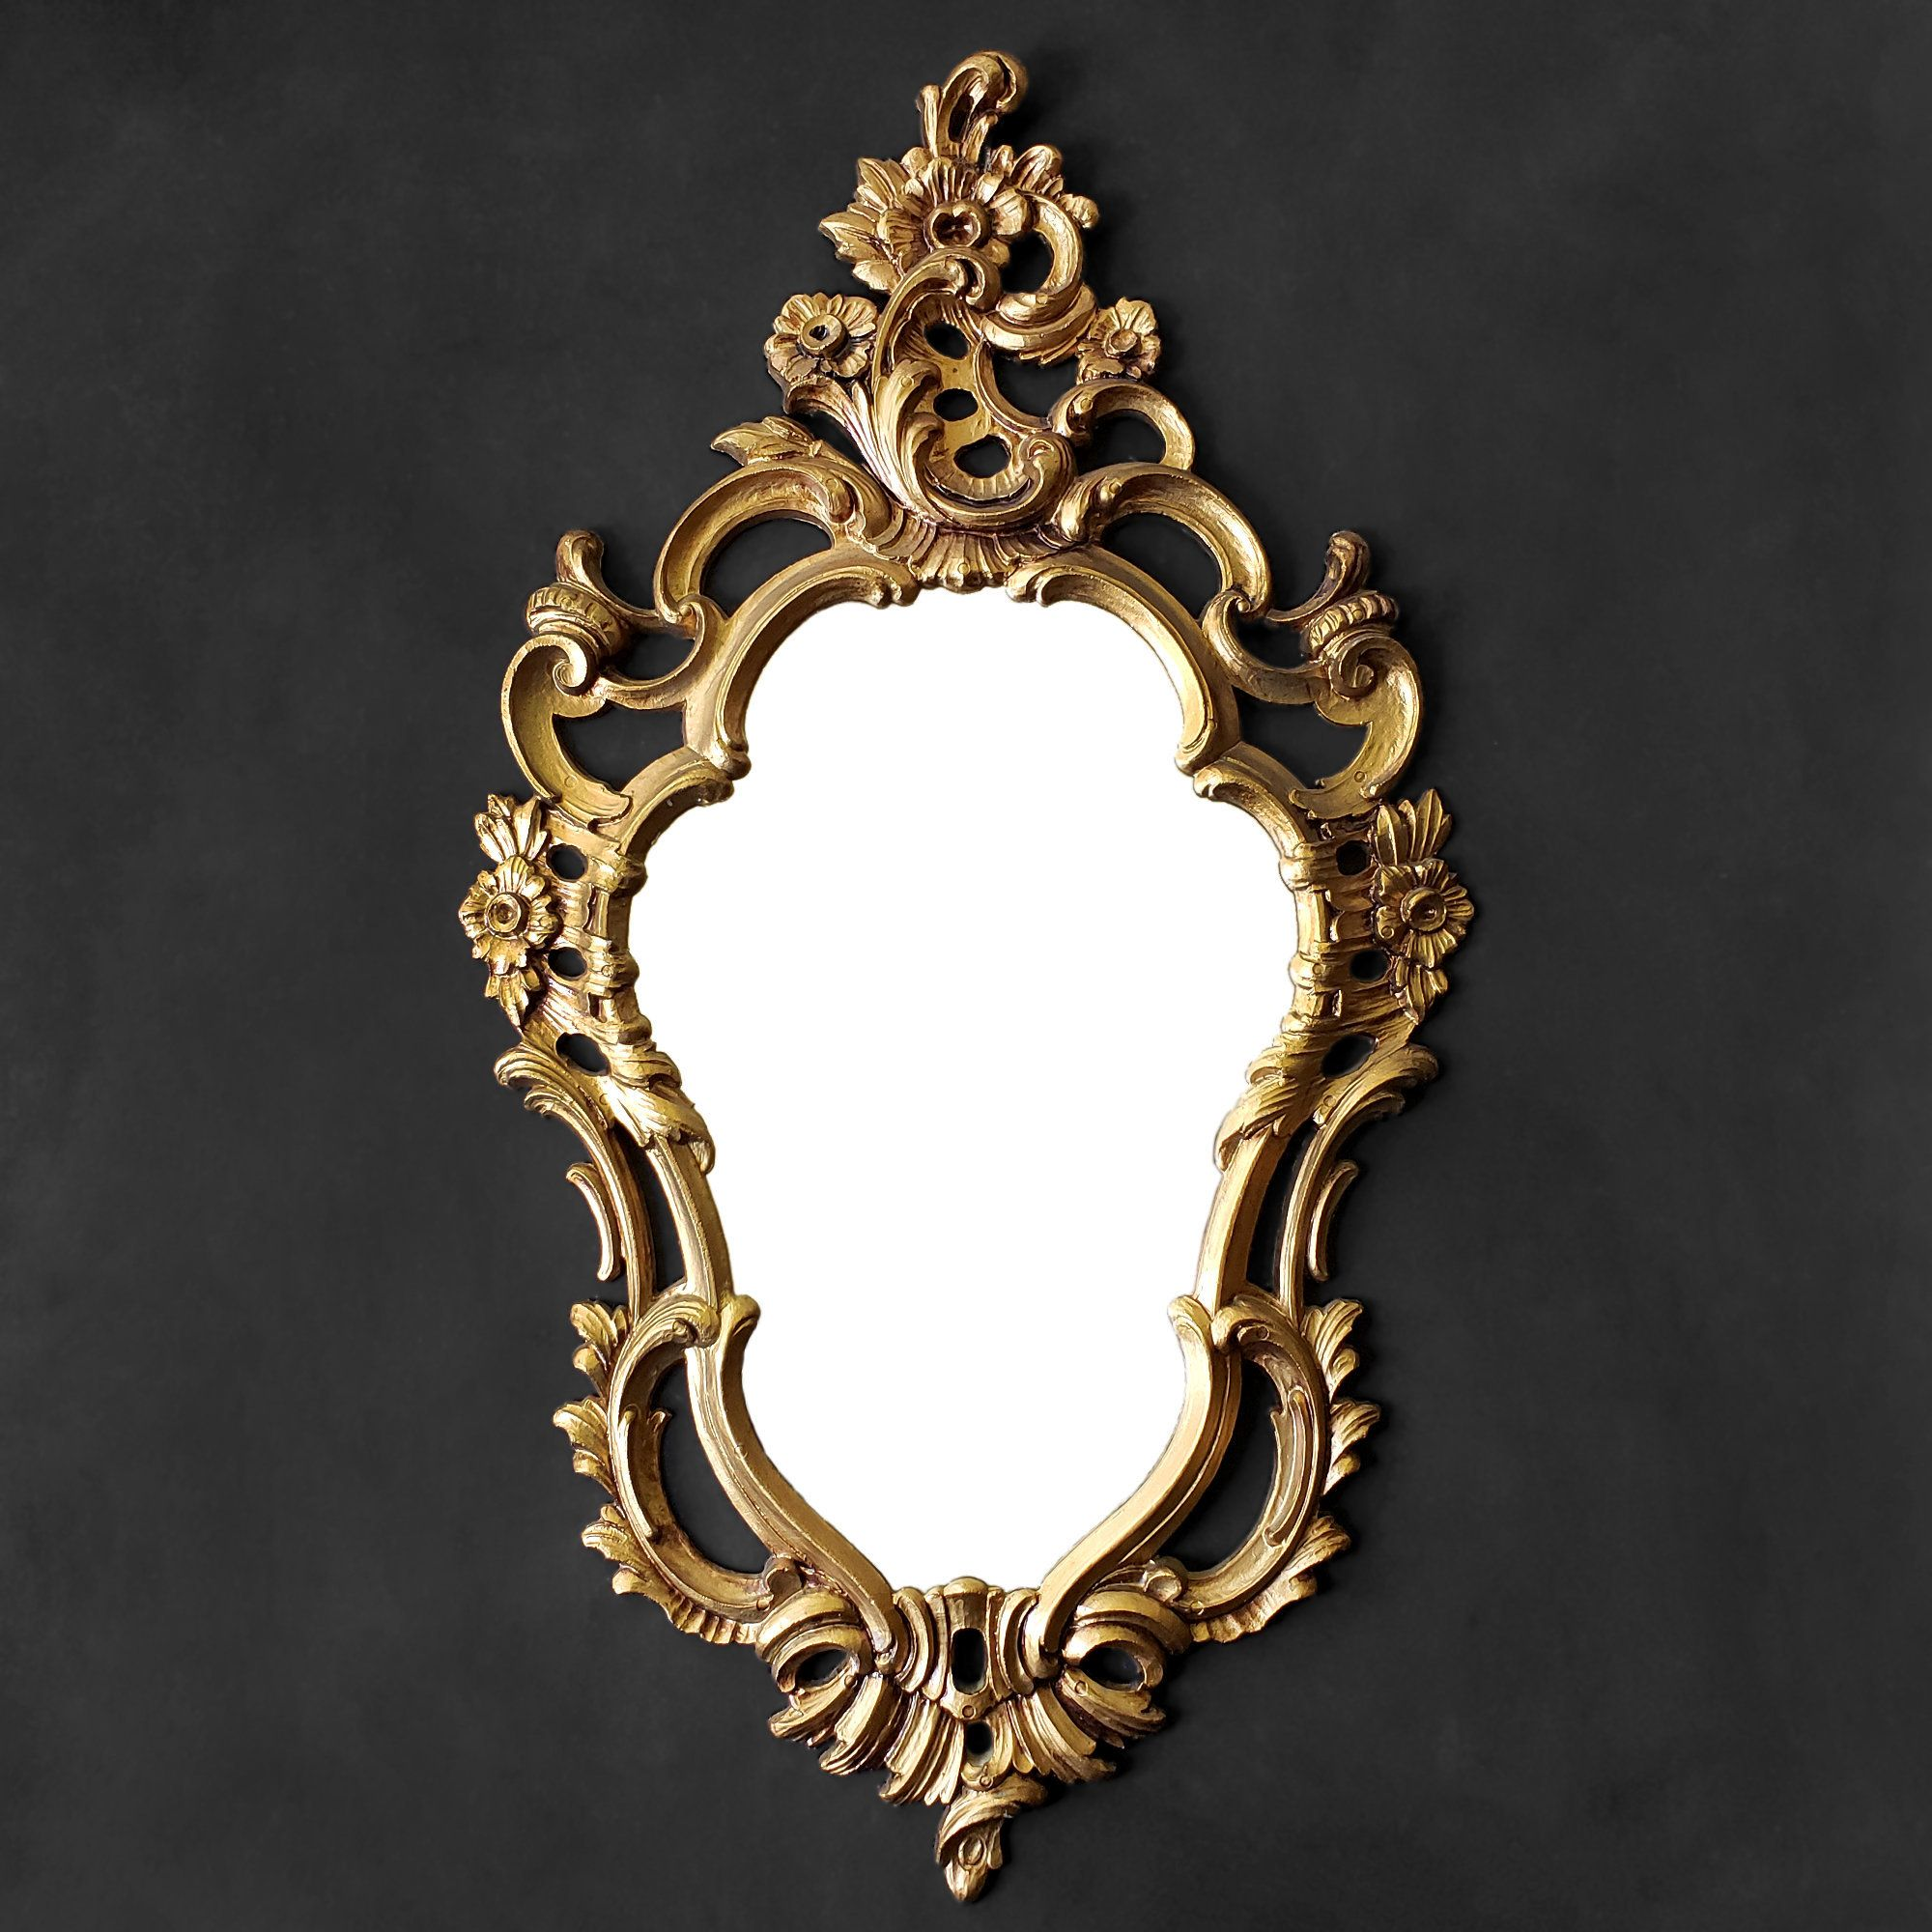 Gold Accent Mirror Small Ornate Floral Mirror Vintage In 2020